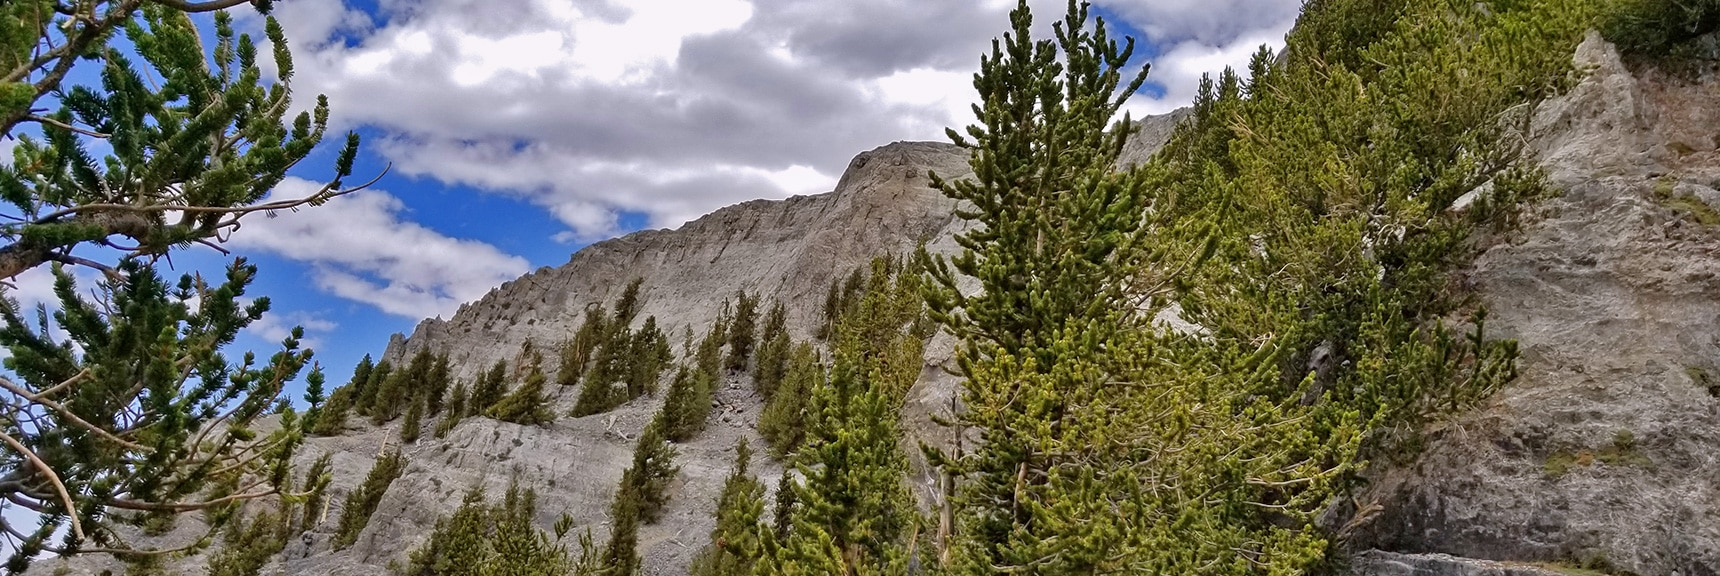 Total Solitude in the Spot. Nobody Comes Here Even on the Busiest Days. | Mummy Mountain NW Cliffs | Mt Charleston Wilderness | Spring Mountains, Nevada